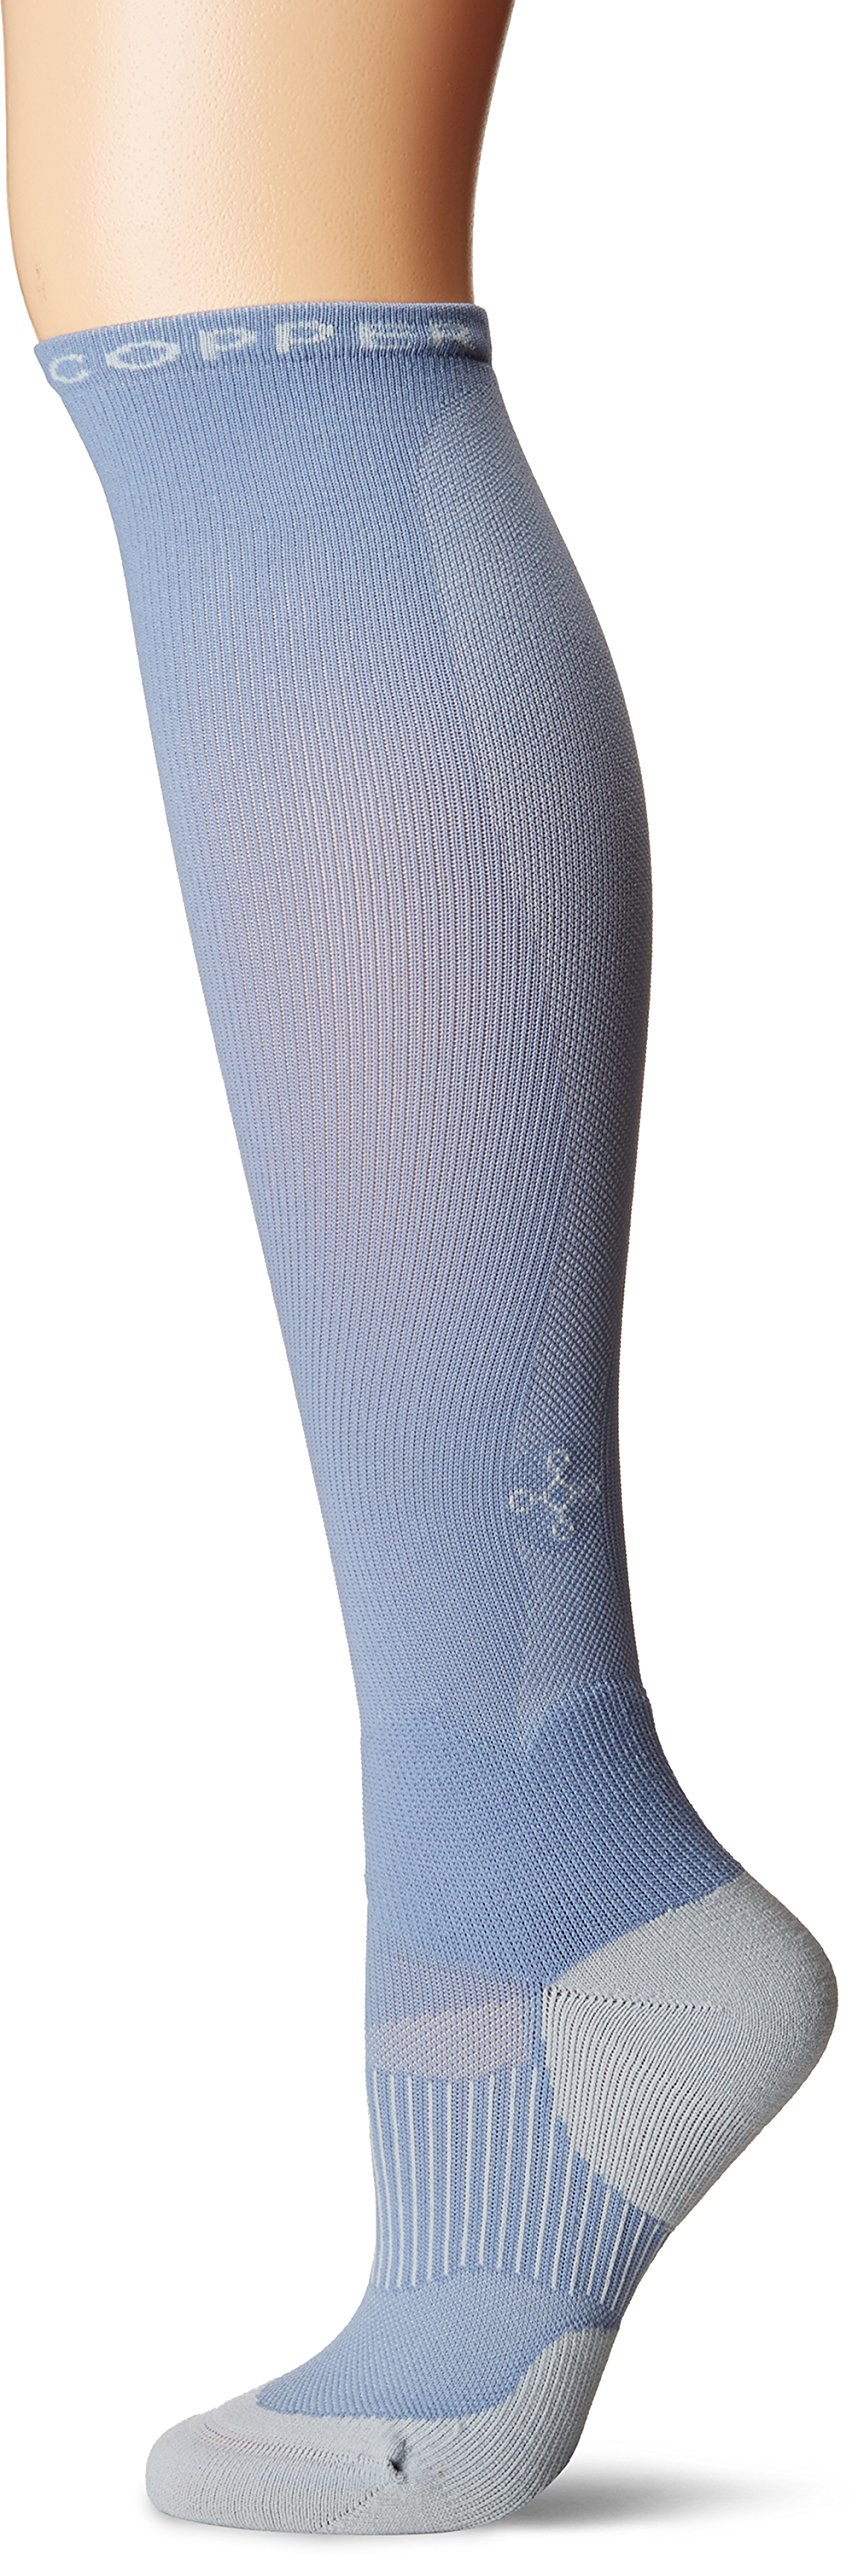 Tommie Copper Women's Performance Compression Over The Calf Socks, Faded Denim Grey, 4-6.5 by Tommie Copper